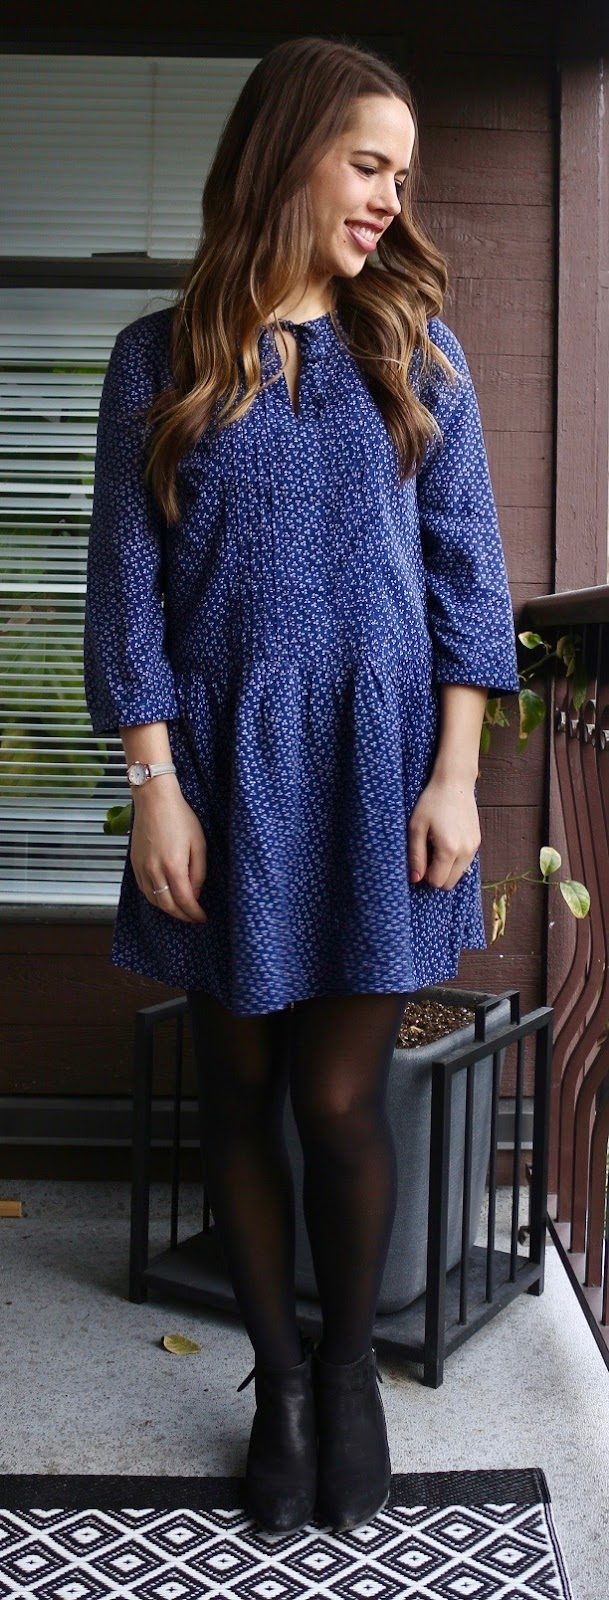 Jules in Flats - Old Navy Pleated Tie-Neck Dress in Blue Print